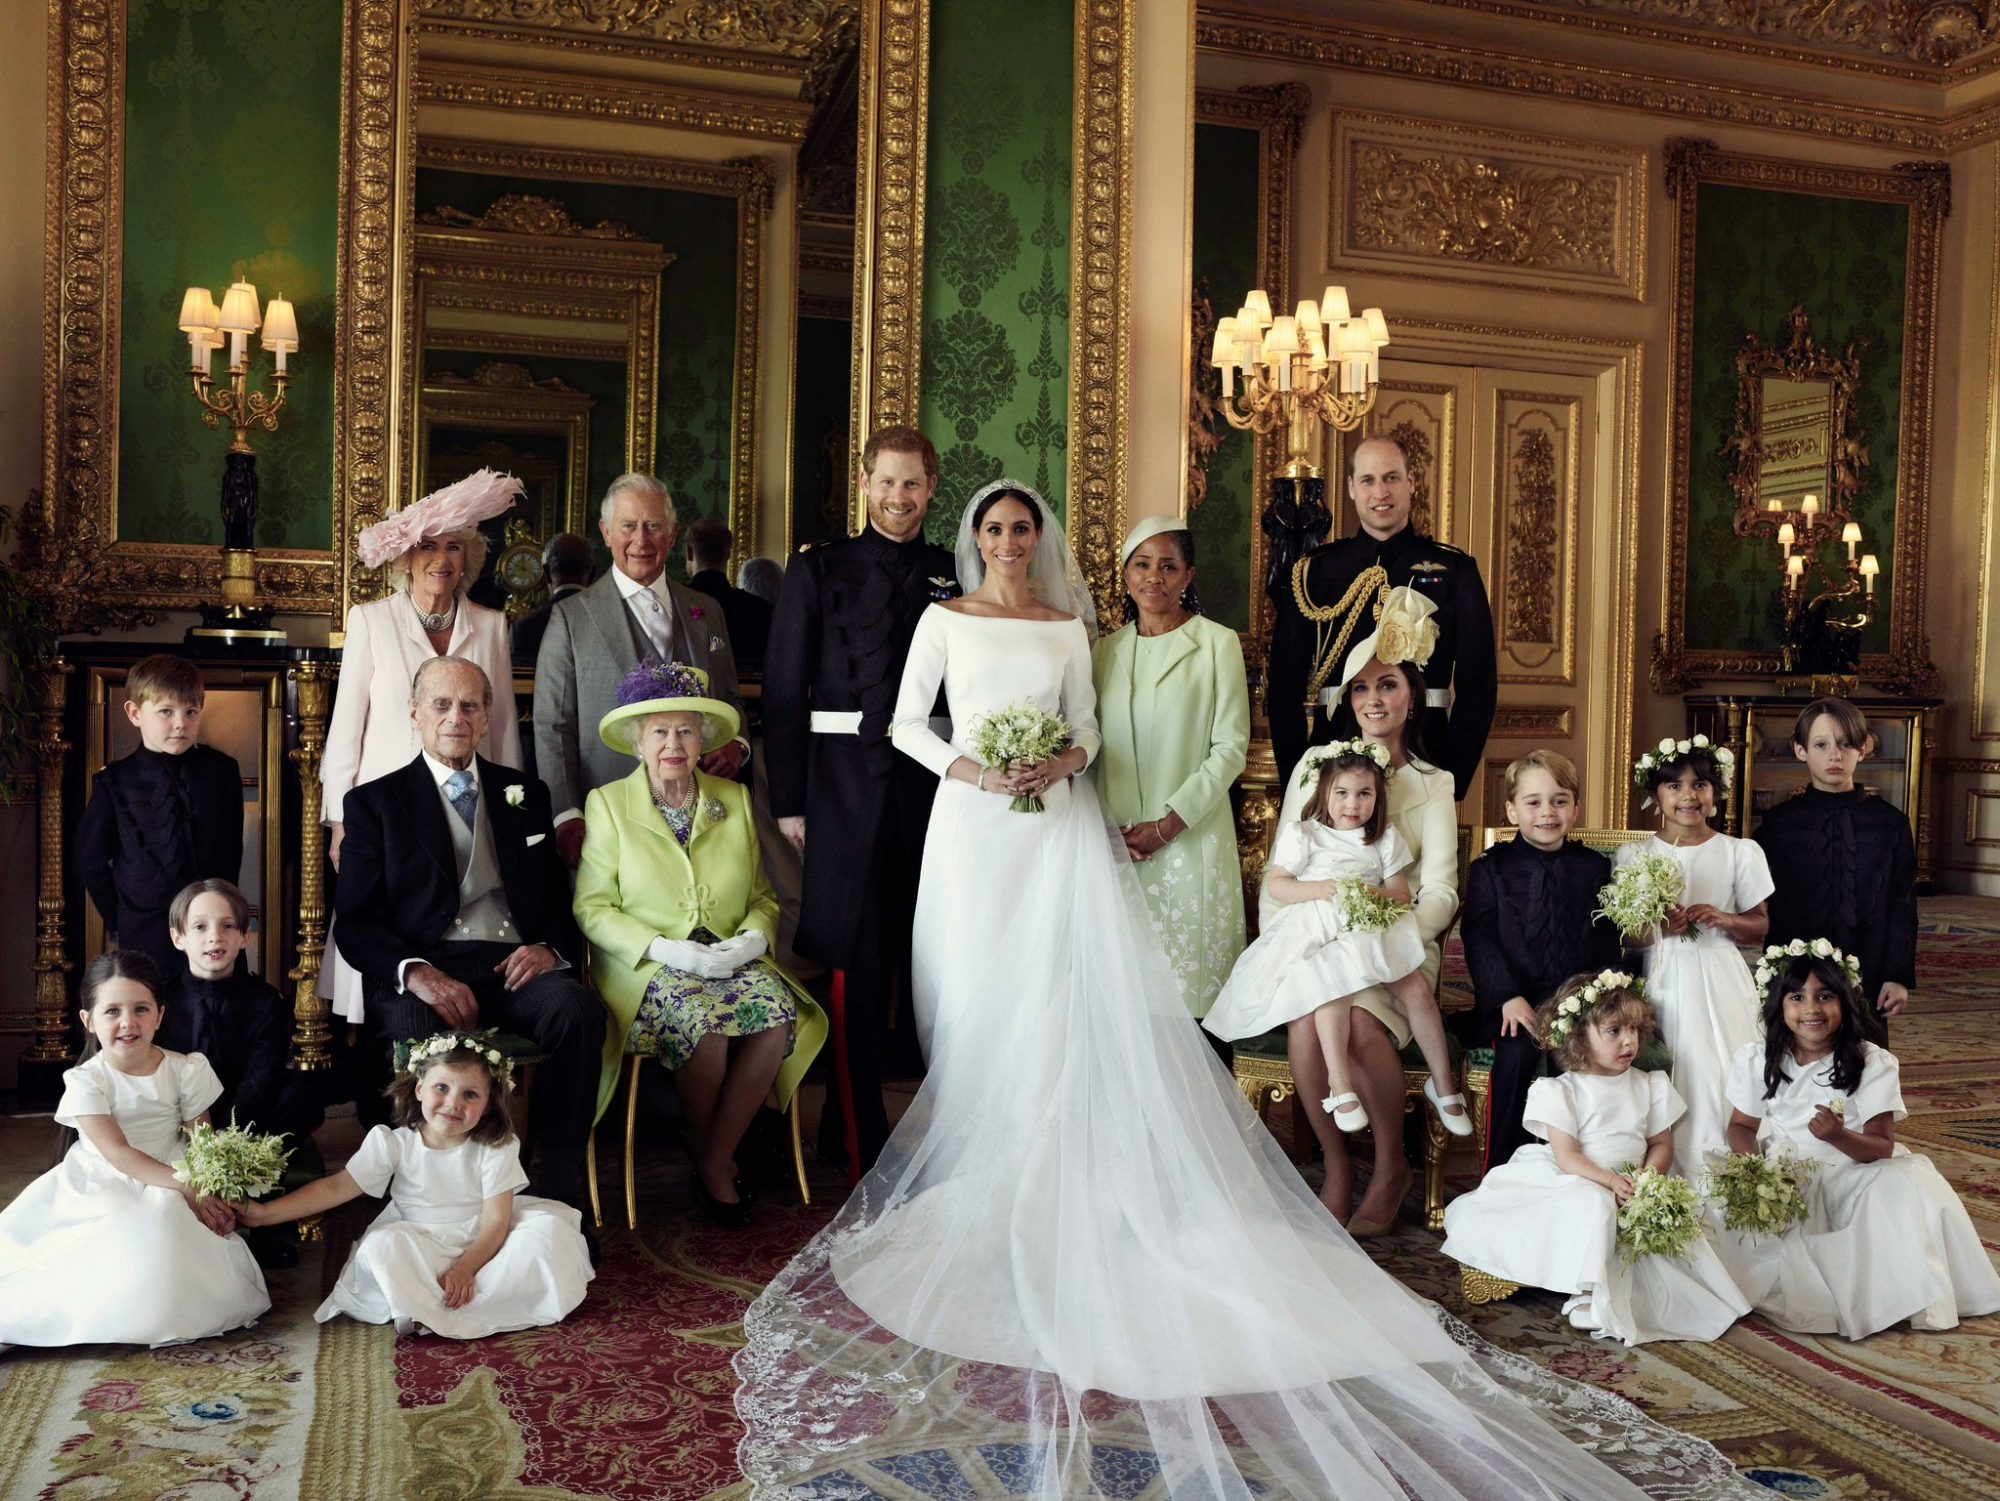 Harry and Meghan Family Wedding Portrait